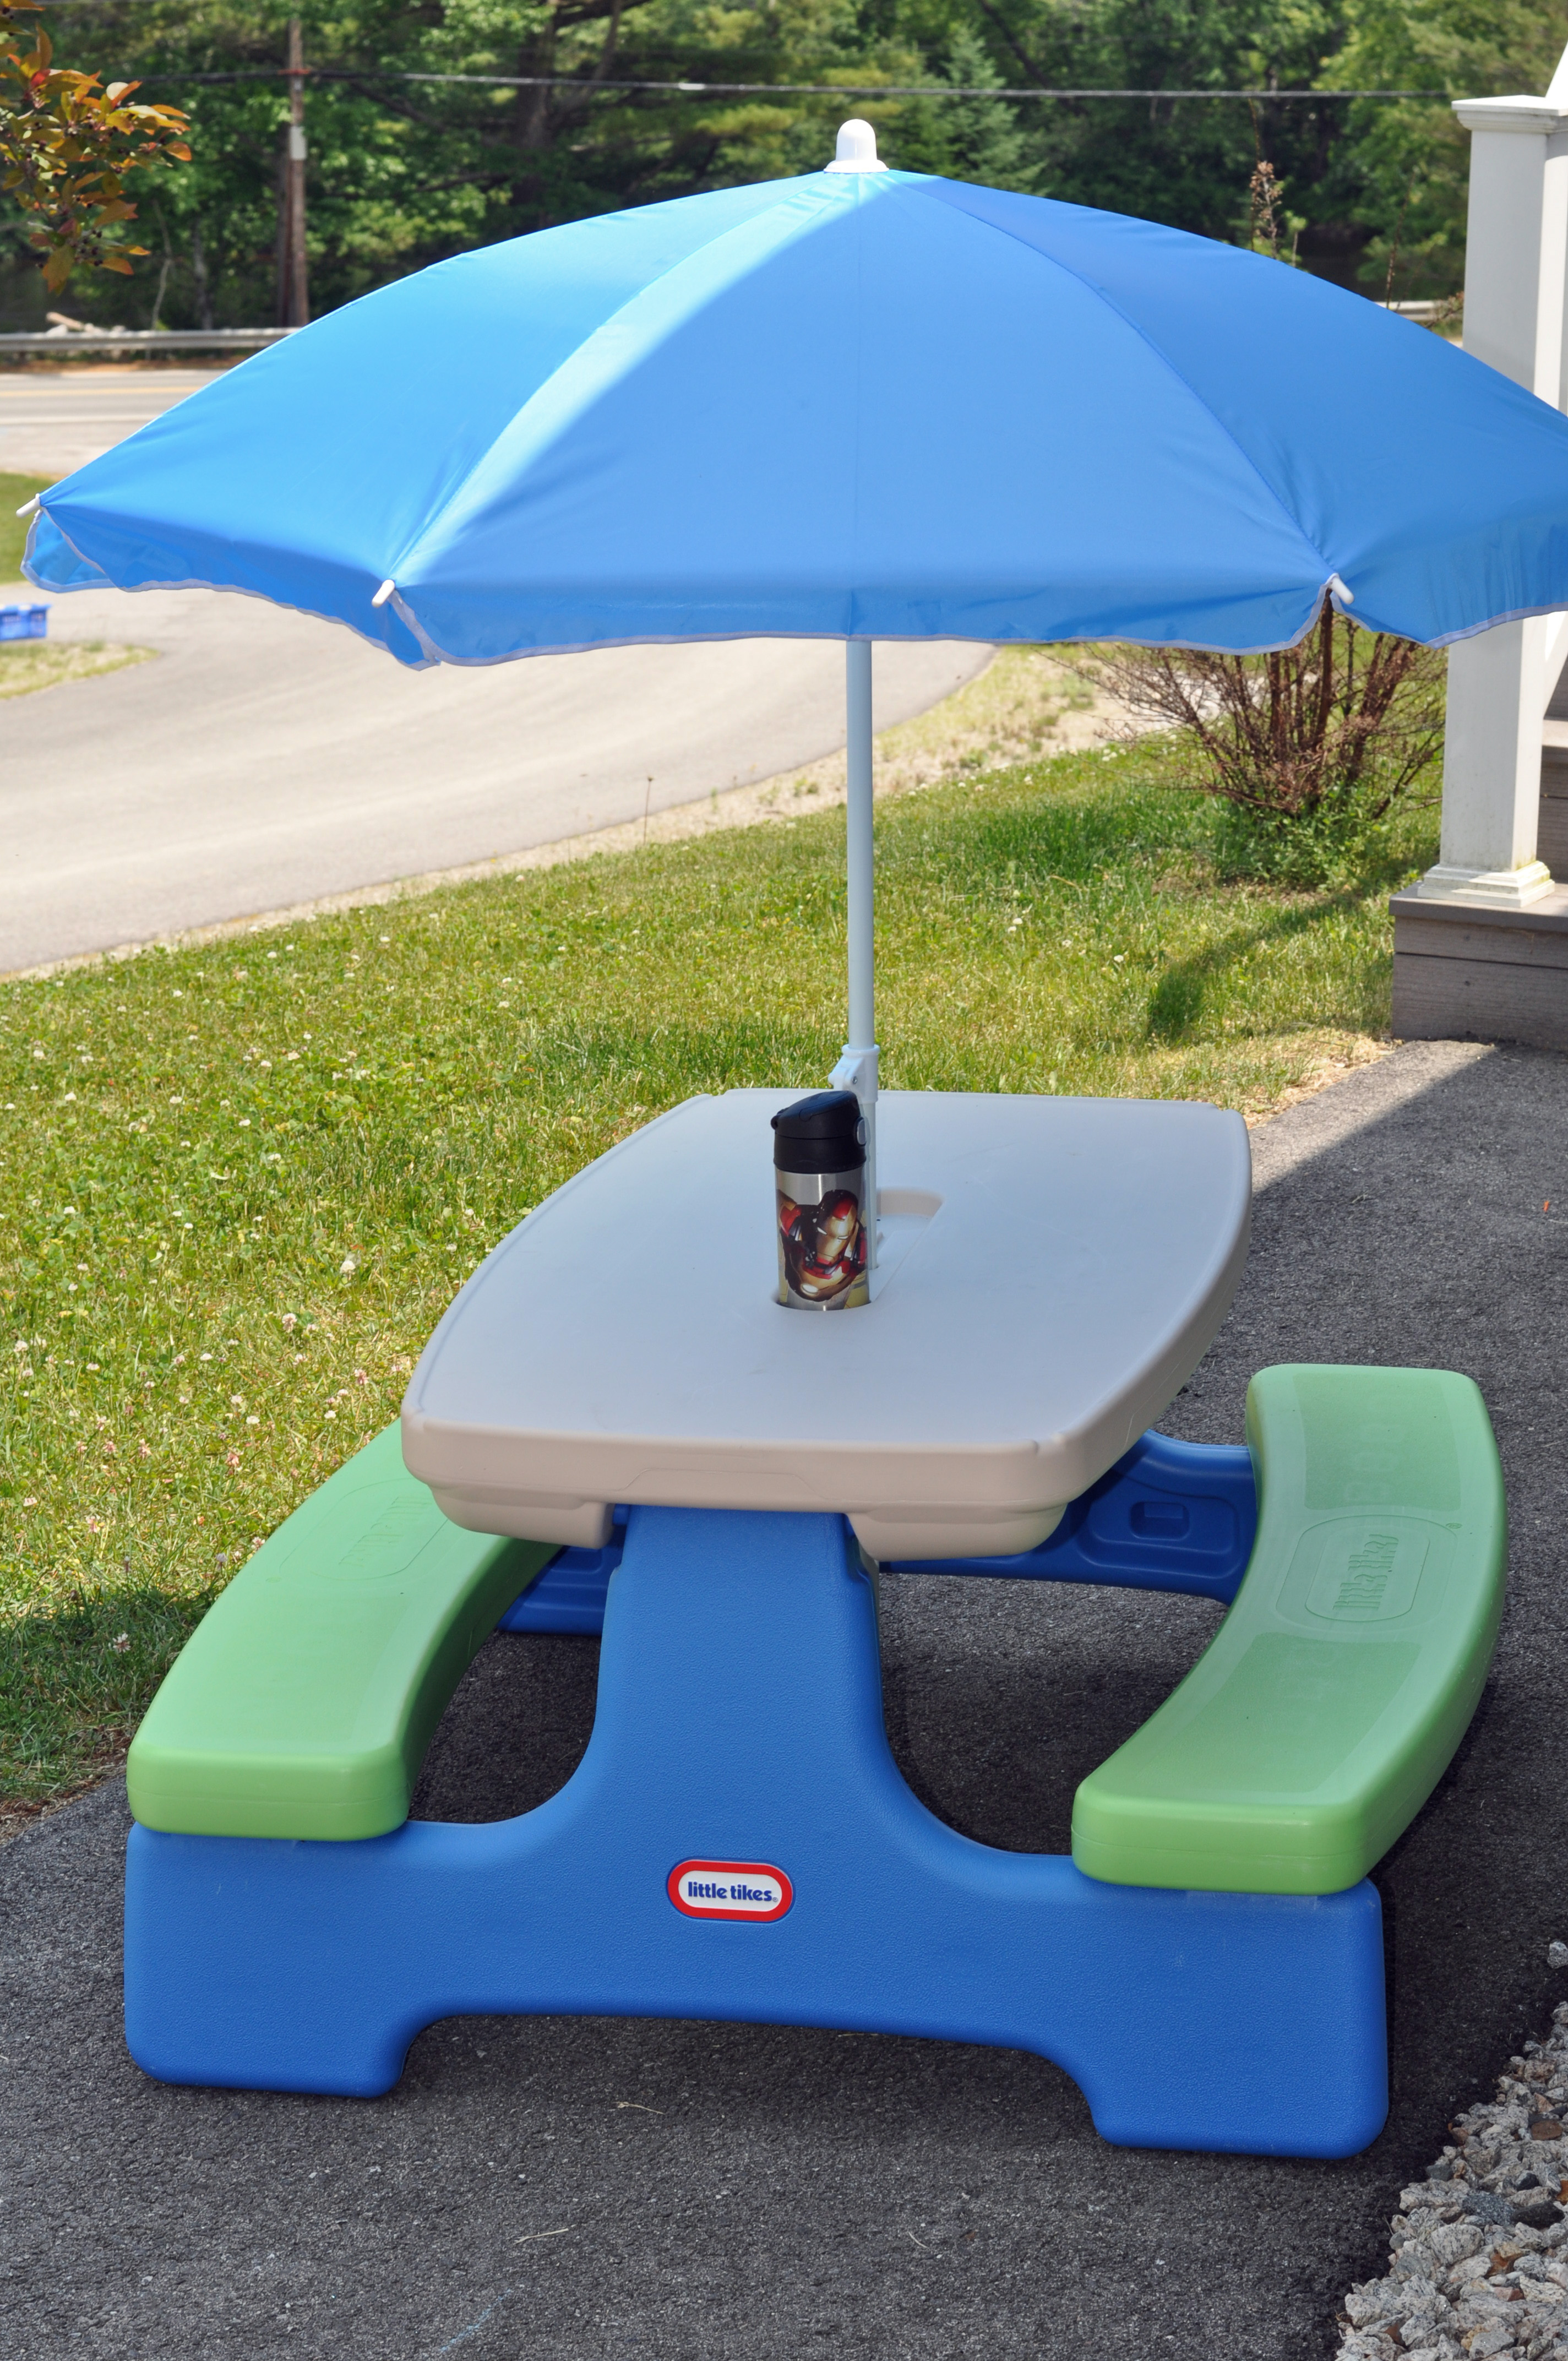 Little Tikes Picnic Table Easy Store Picnic Table With Umbrella